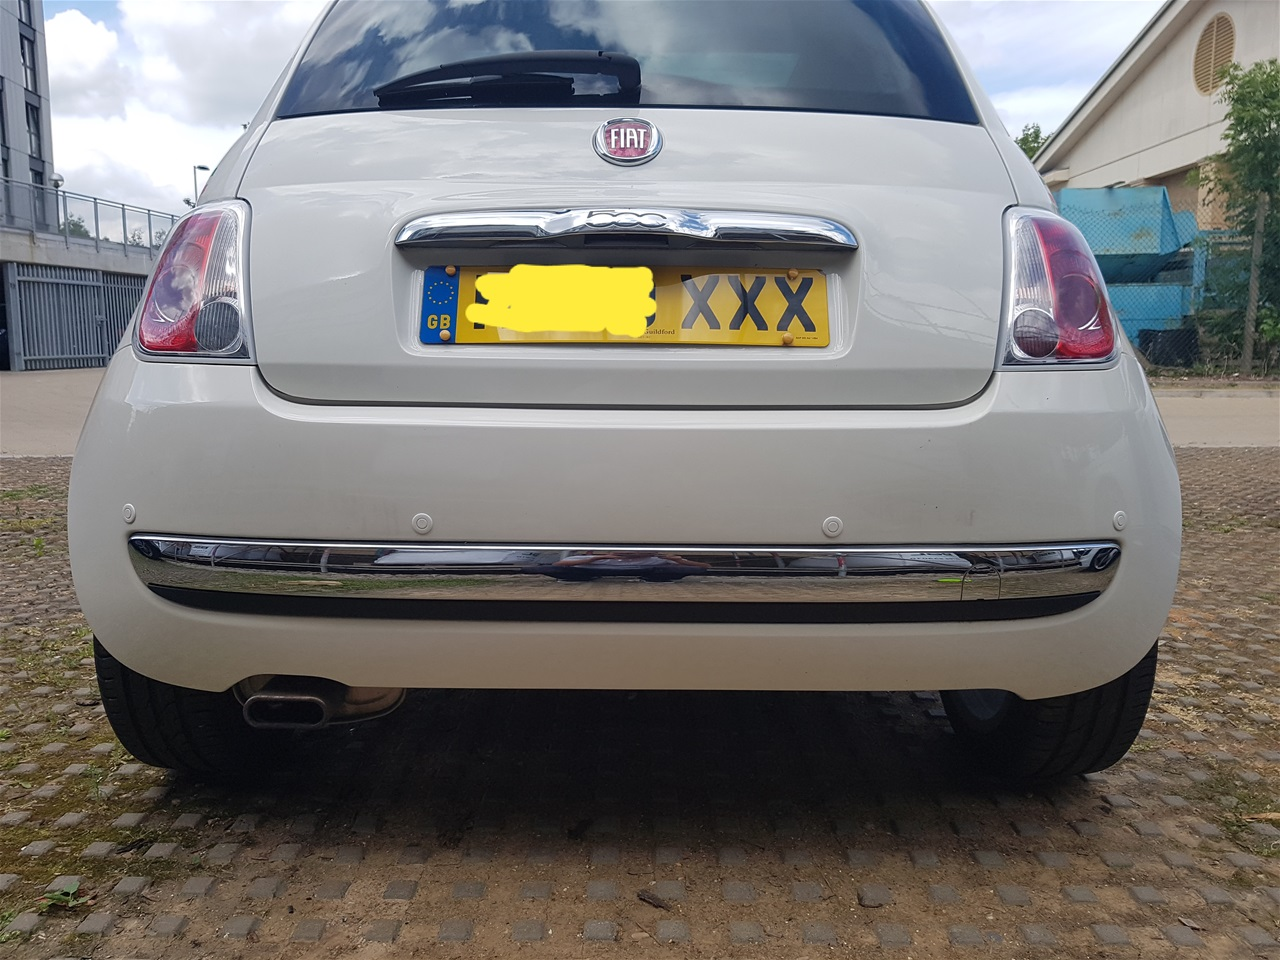 Fiat 500 rear colour coded parking sensors